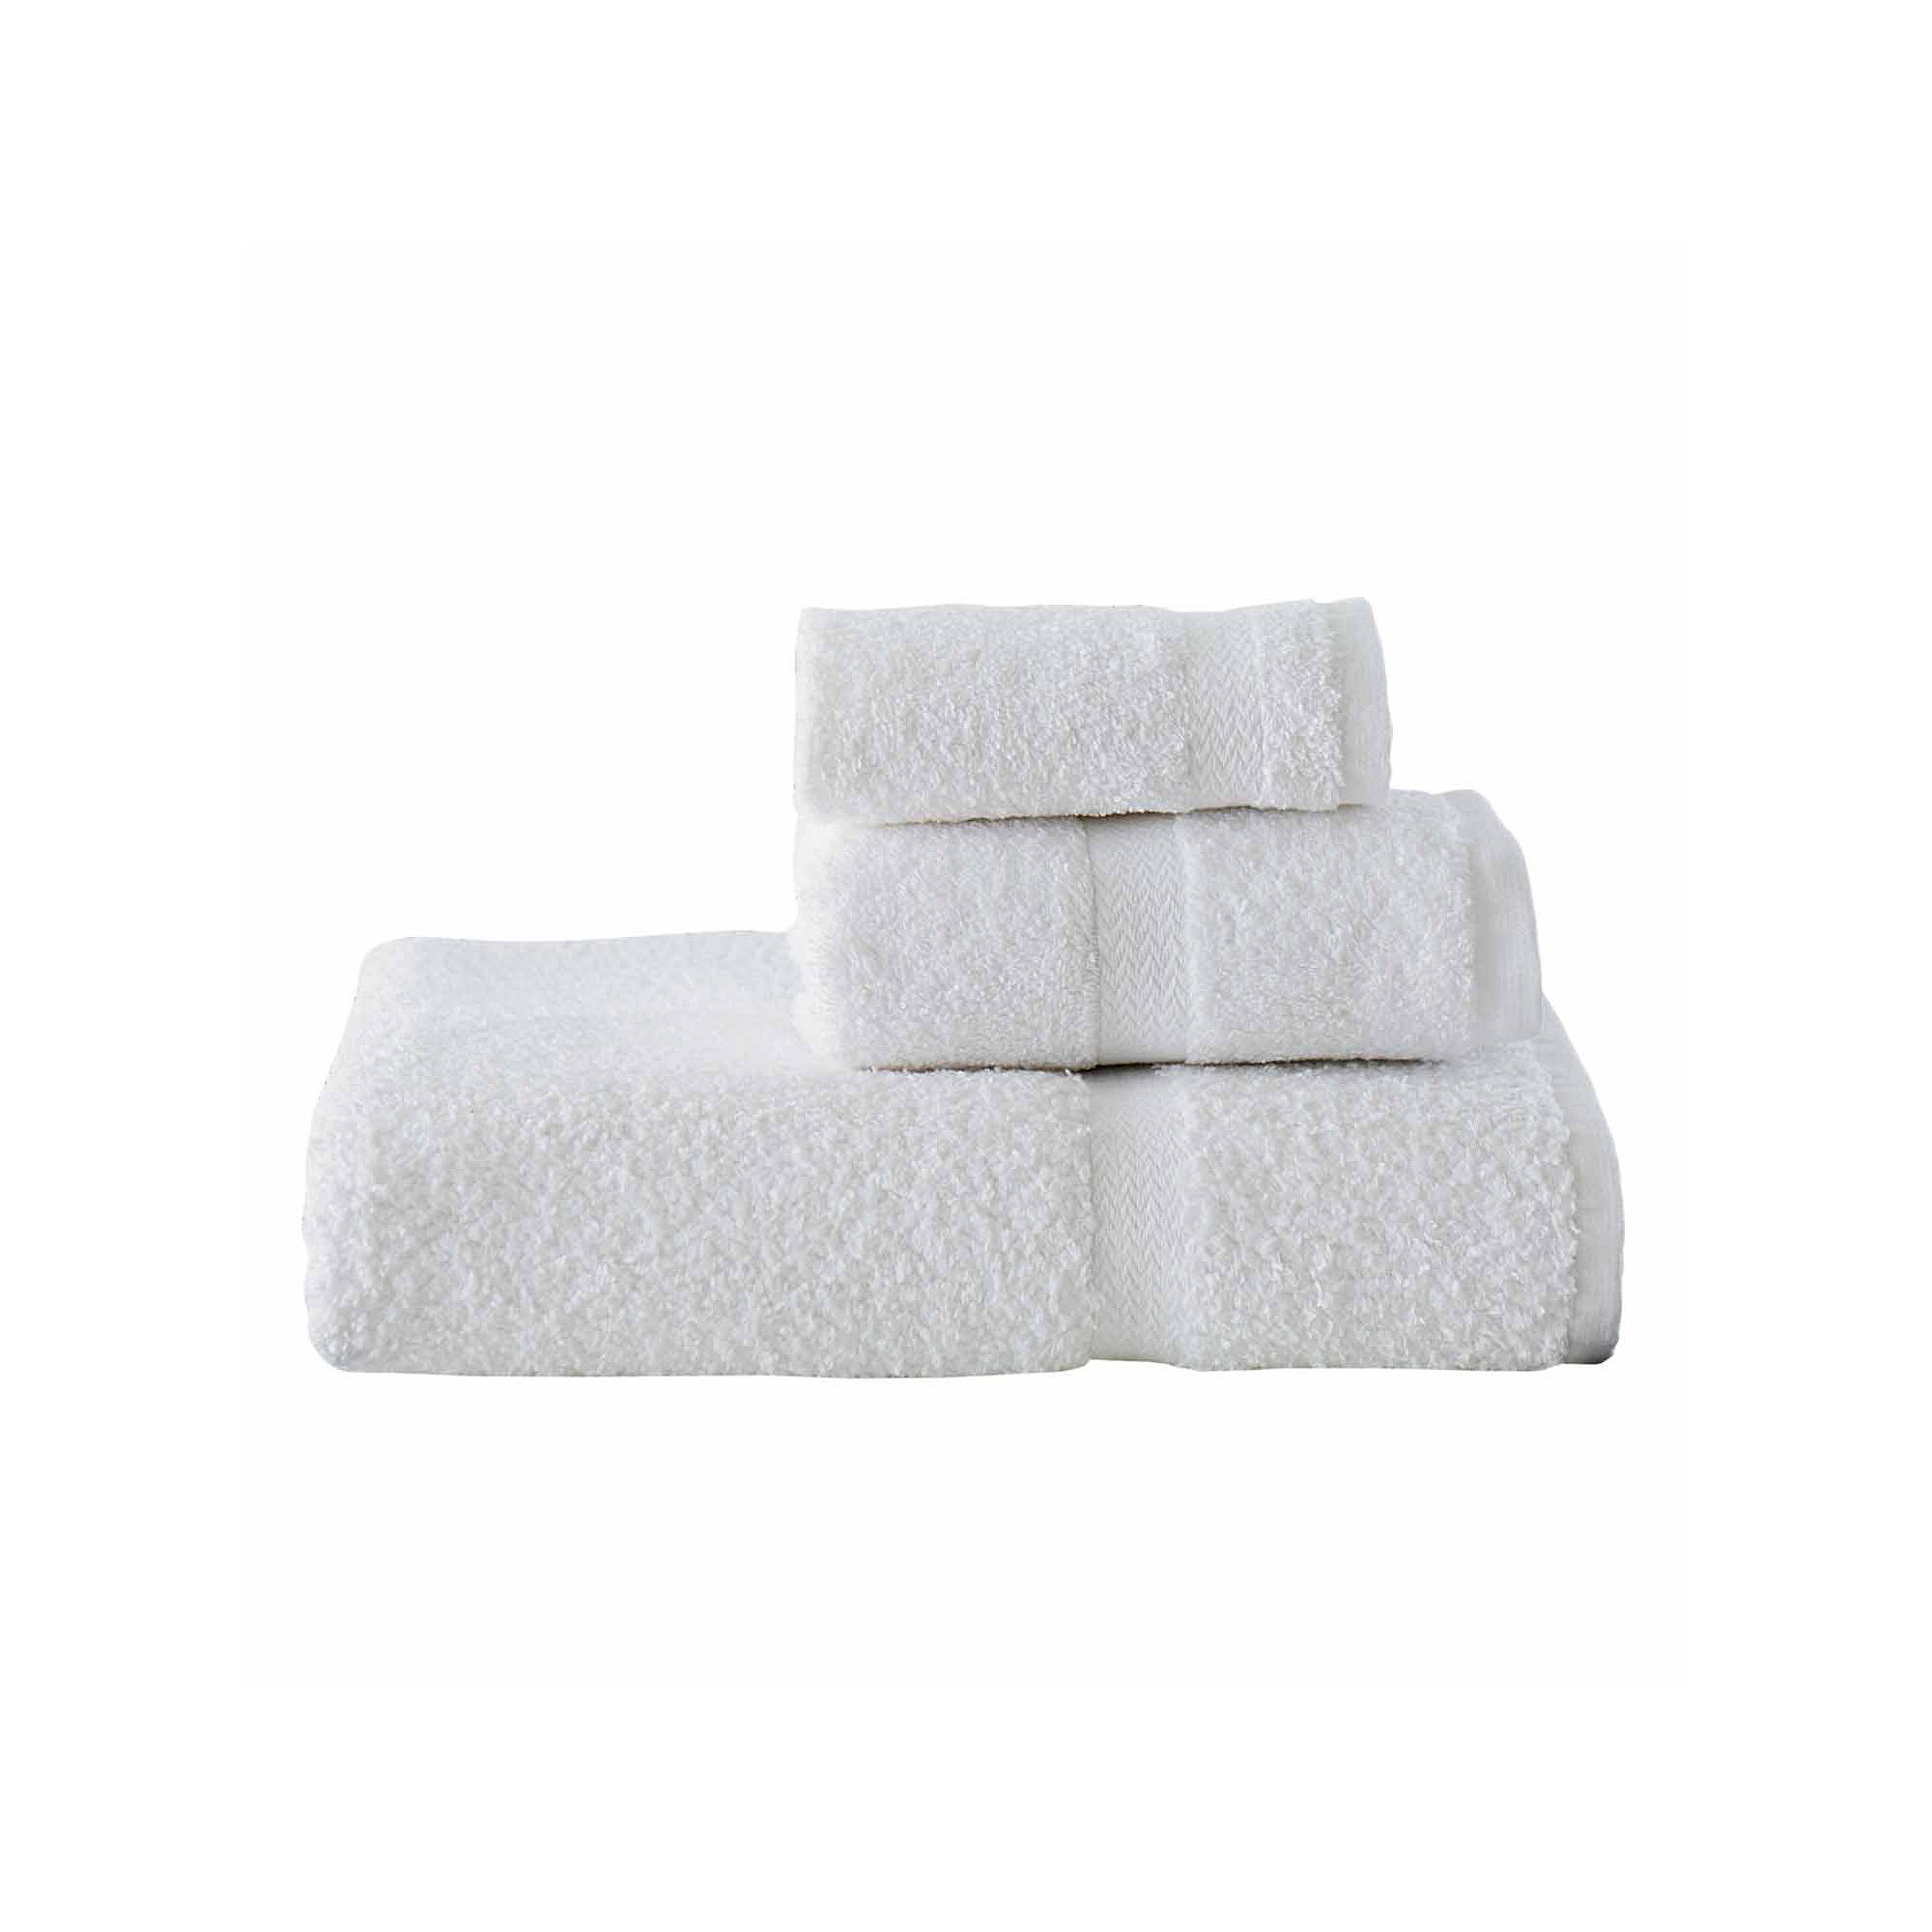 Welington 36-pc. 27x56 Bath Towel Set